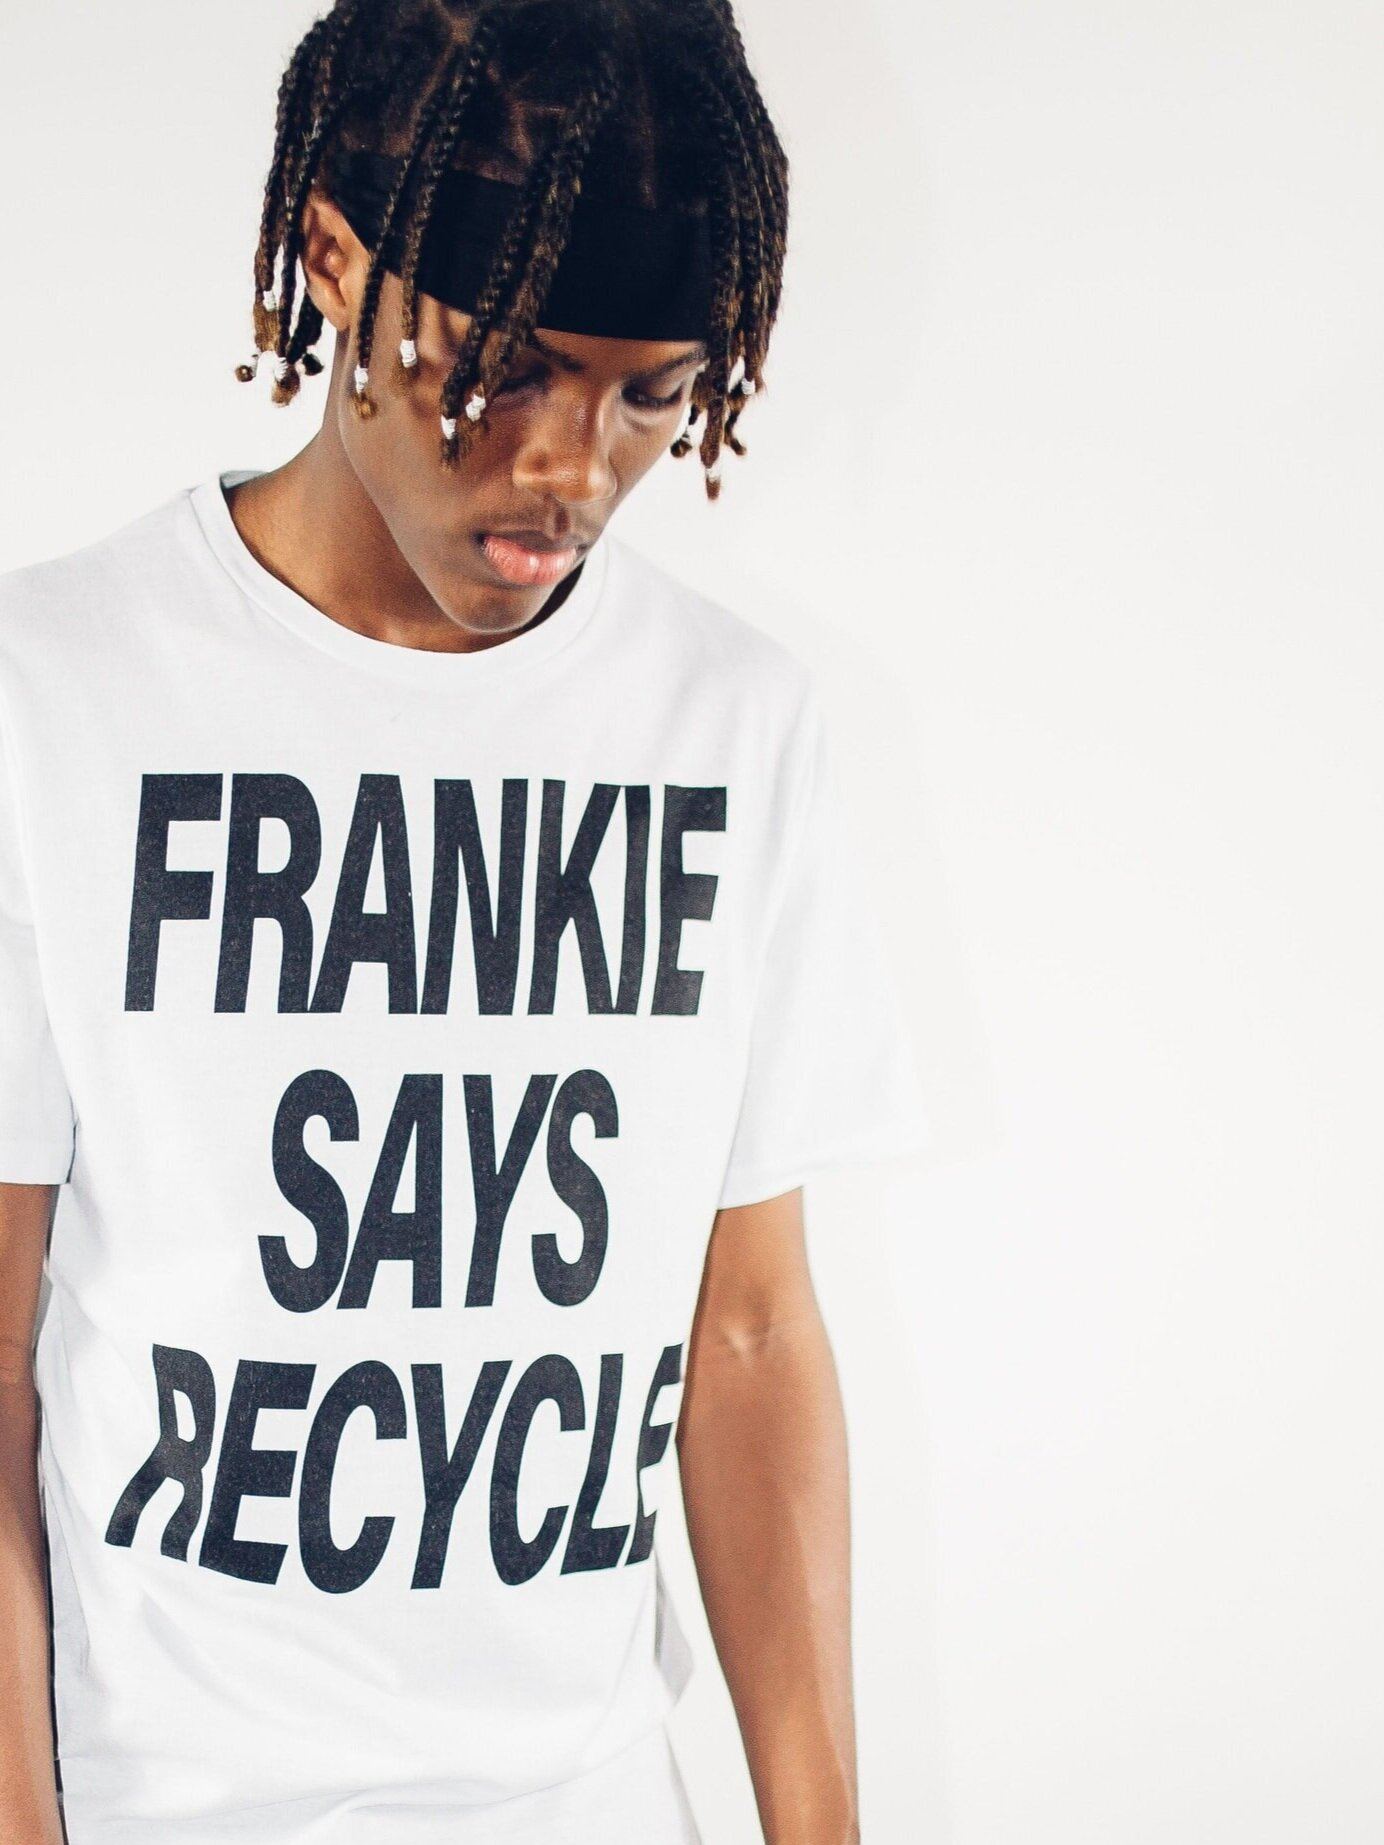 FRANKIE SAYS TSHIRT - MENS WHITE. from TOBEFRANK